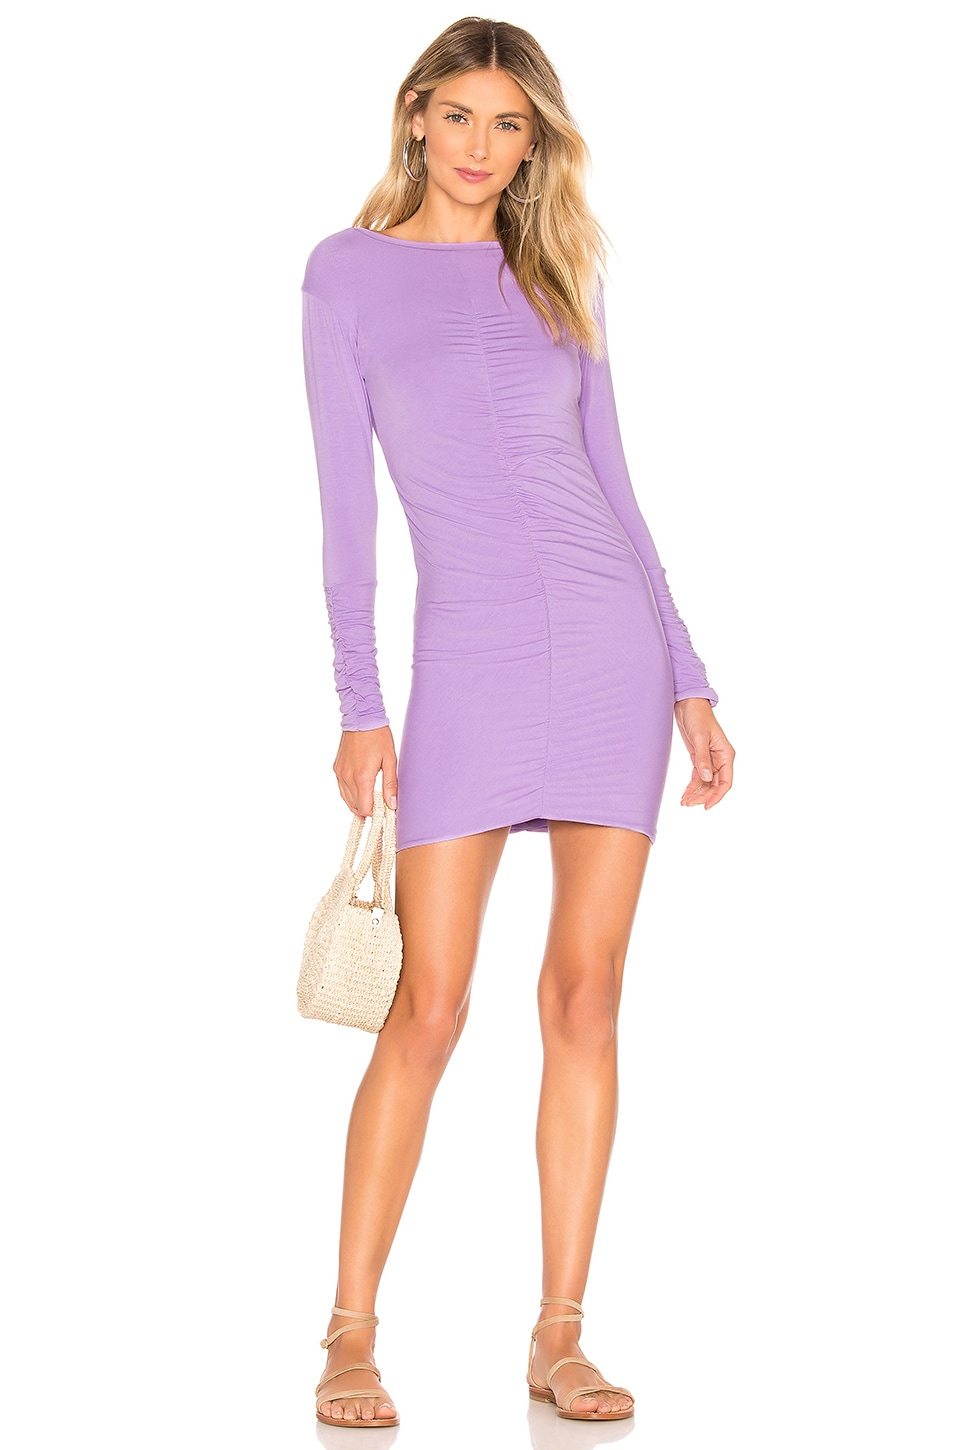 Indah Marzipan Ruched Mini Dress in Lilac